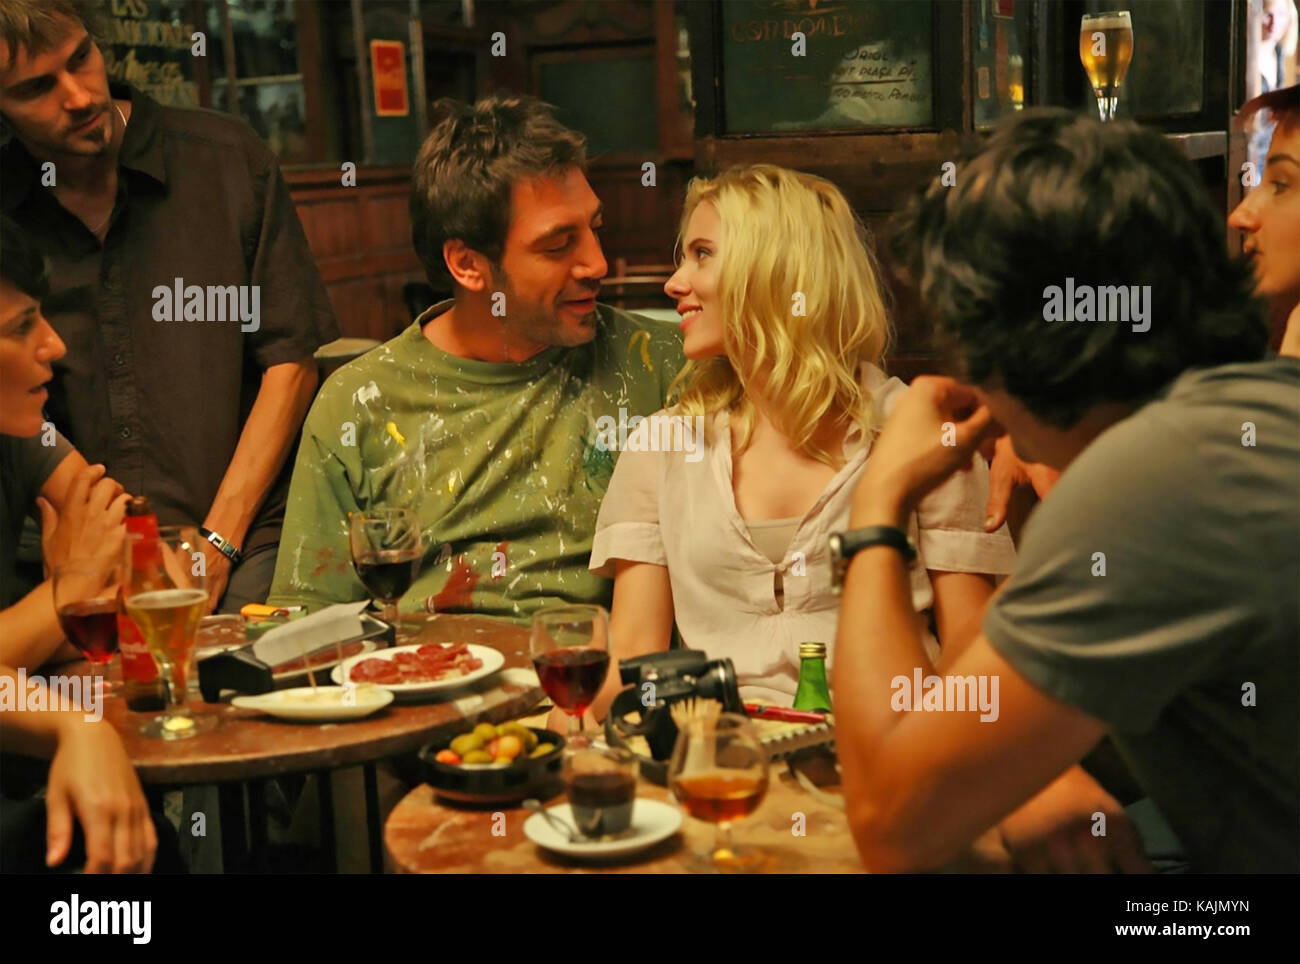 VICKY CRISTINA BARCELONA 2008 MGM film with from left: Javier Bardem and  Scarlett Johansson - Stock Image